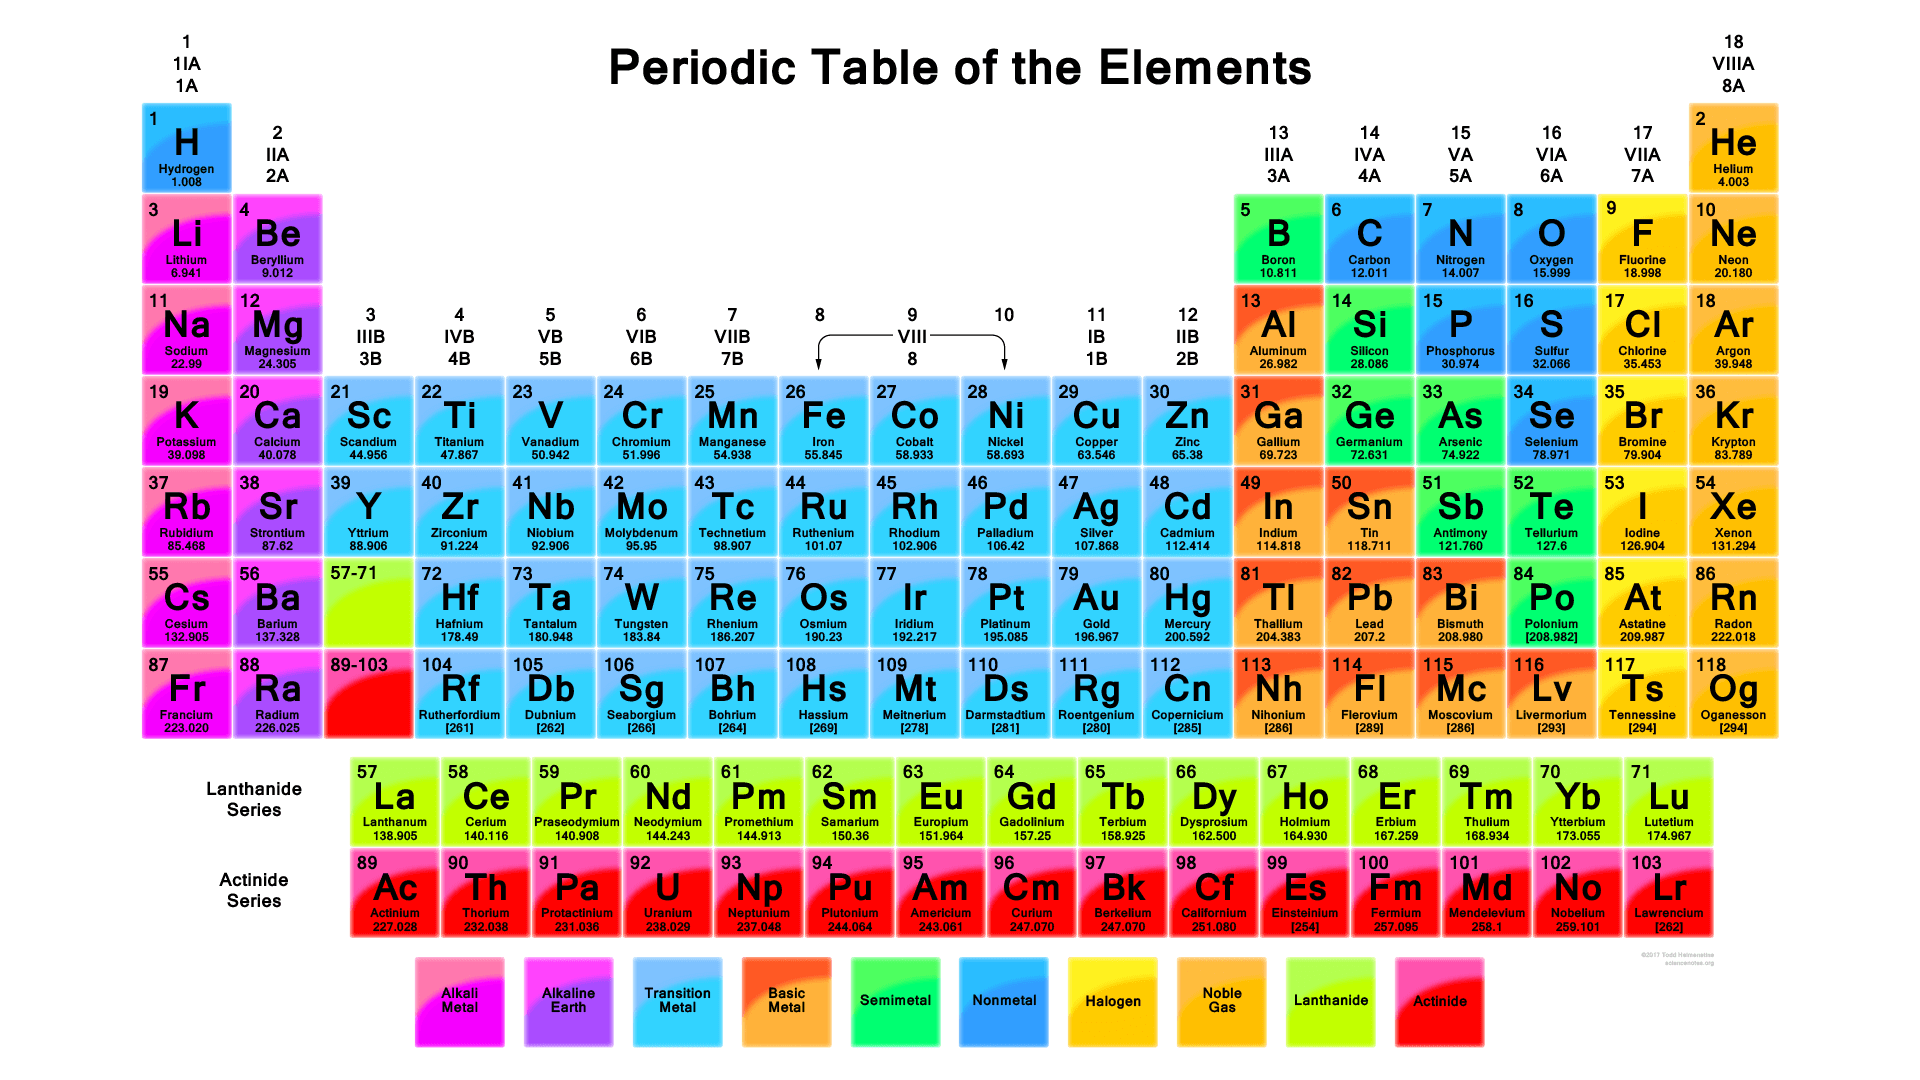 Periodic table pdf 2018 edition with 118 elements vibrant periodic table with 118 elements urtaz